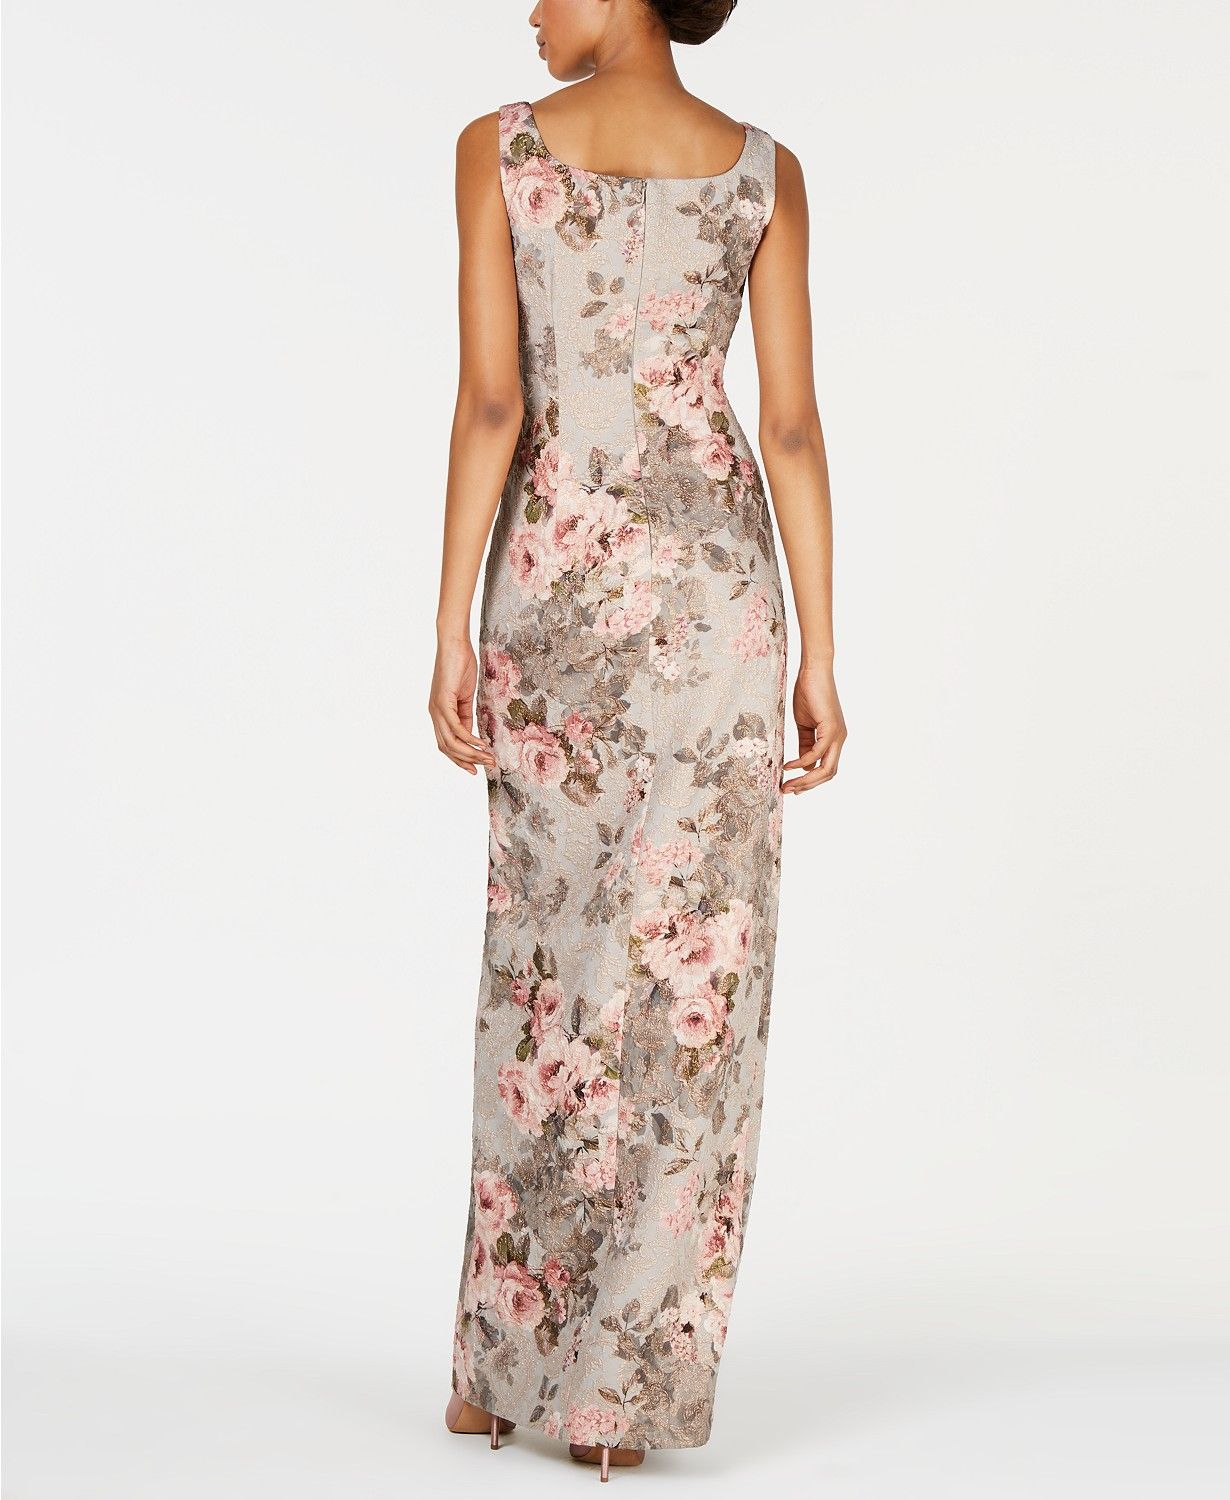 Adrianna Papell Metallic Floral Print Gown Reviews Dresses Women Macy S In 2020 Floral Print Gowns Printed Gowns Mother Of The Bride Dresses